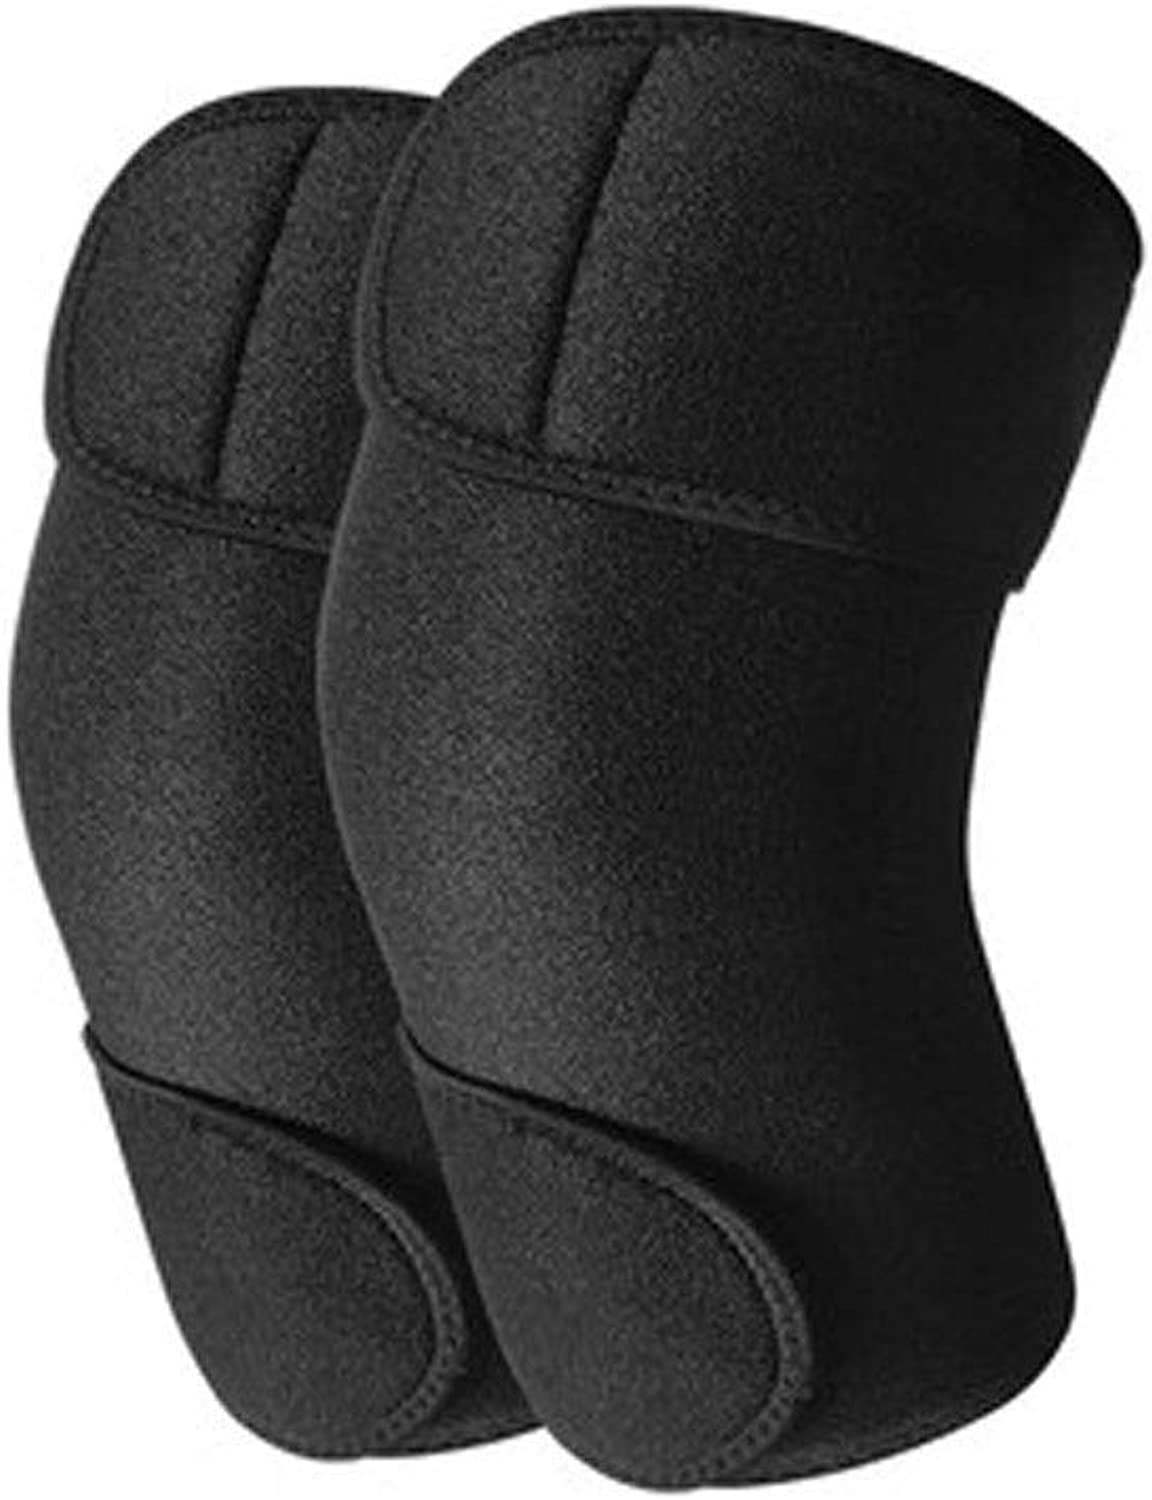 WBBHX Kneepads, Warm Knee Pads, Winter and Summer Warm Leggings for Men and Women Riding Electric Motorcycle Thick Windproof Knee Pads